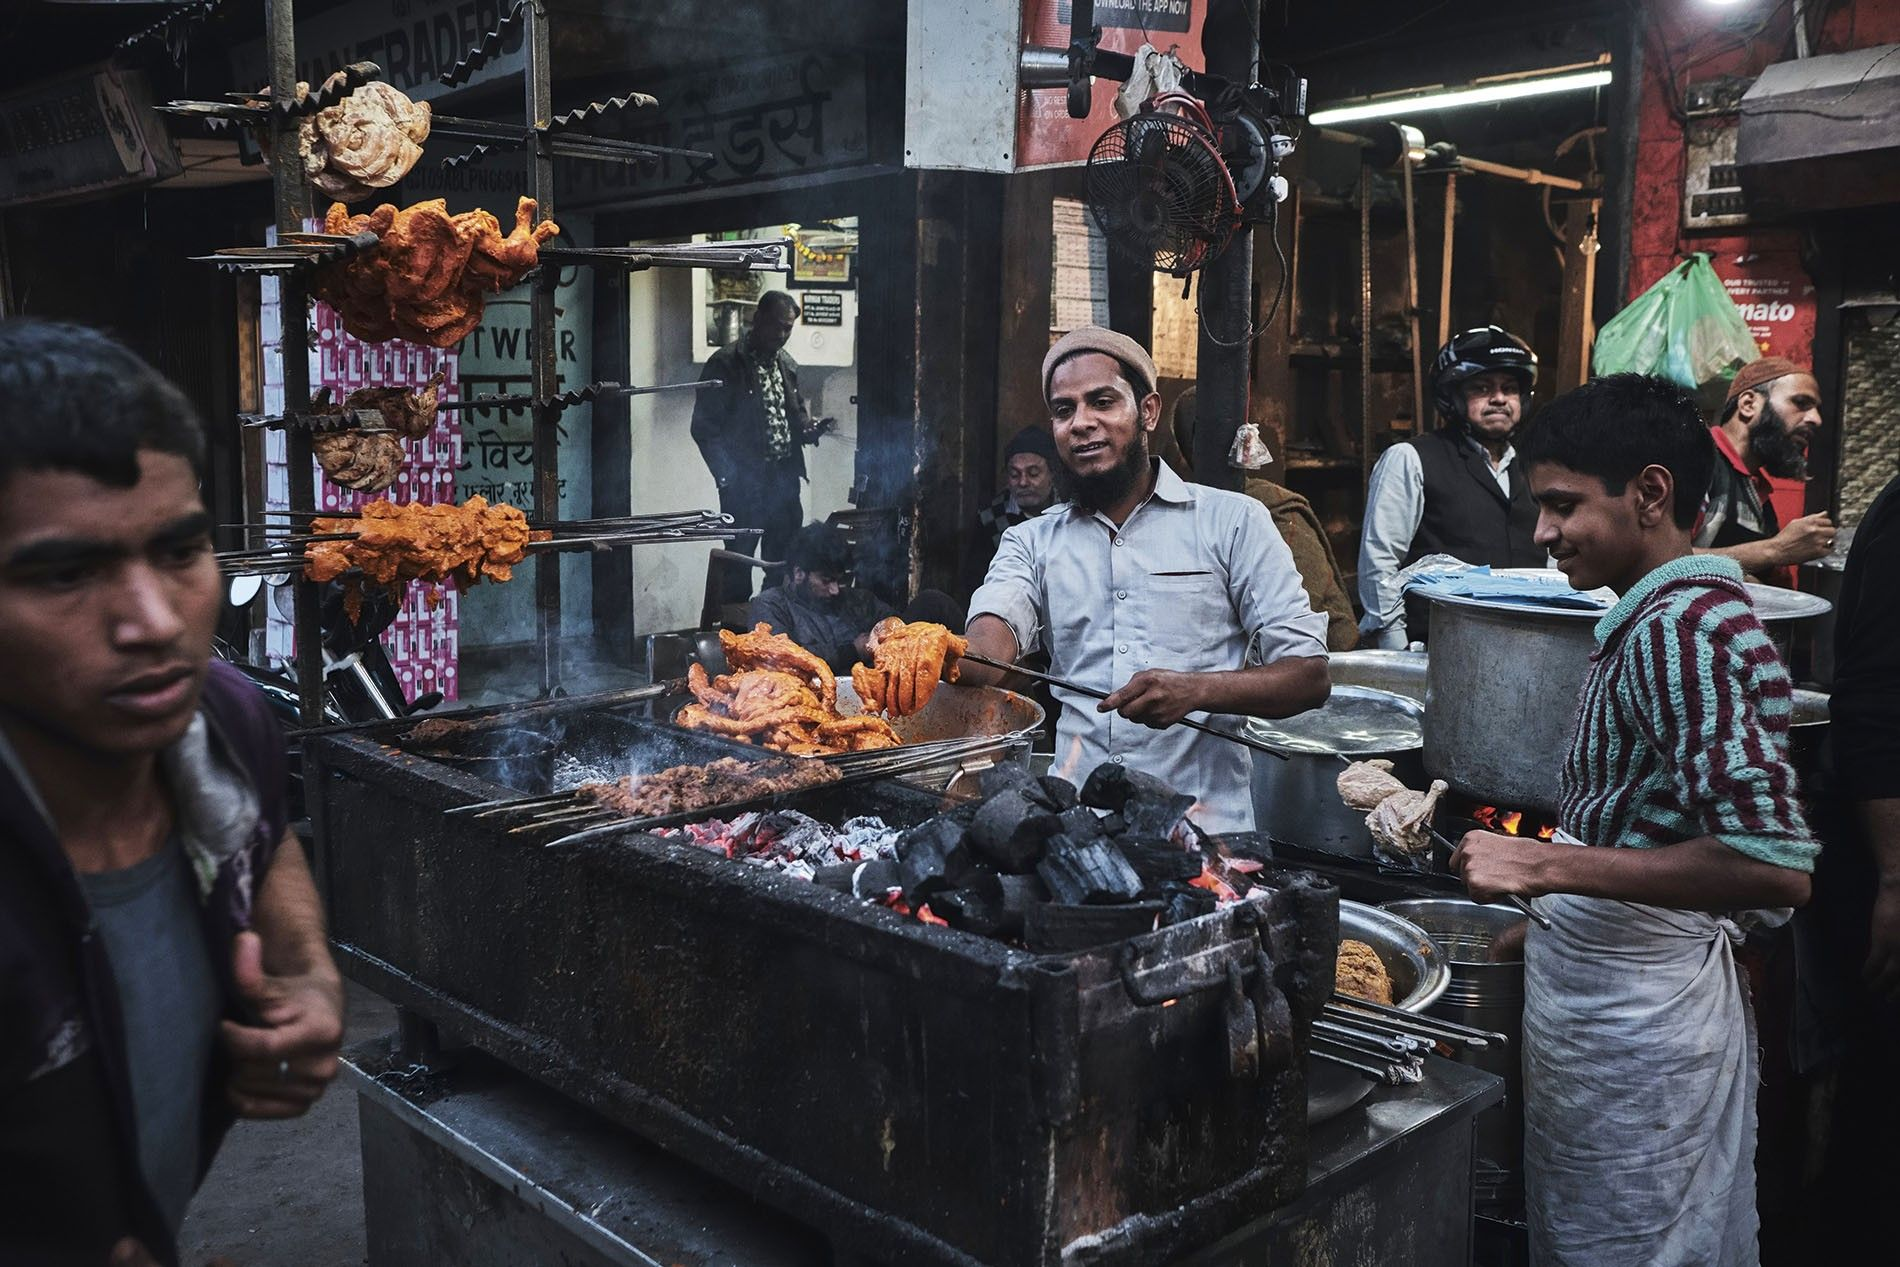 Pasanda kebabs on the grill while a cook skewers chicken at Raheem's in Chowk, Lucknow